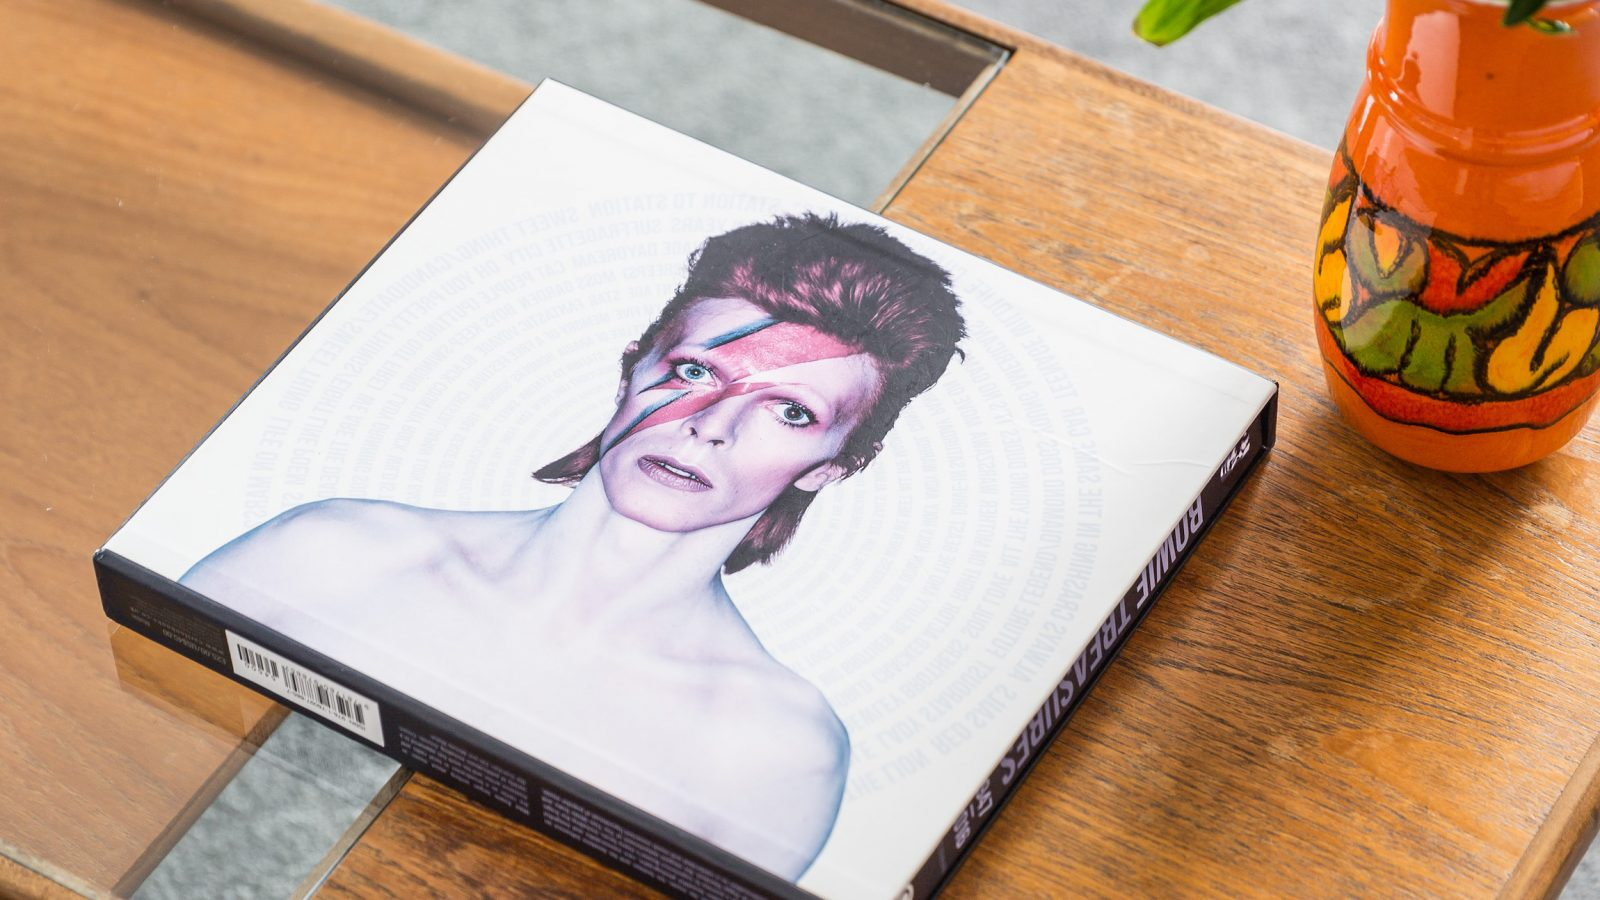 Coffee table with David Bowie coffee book